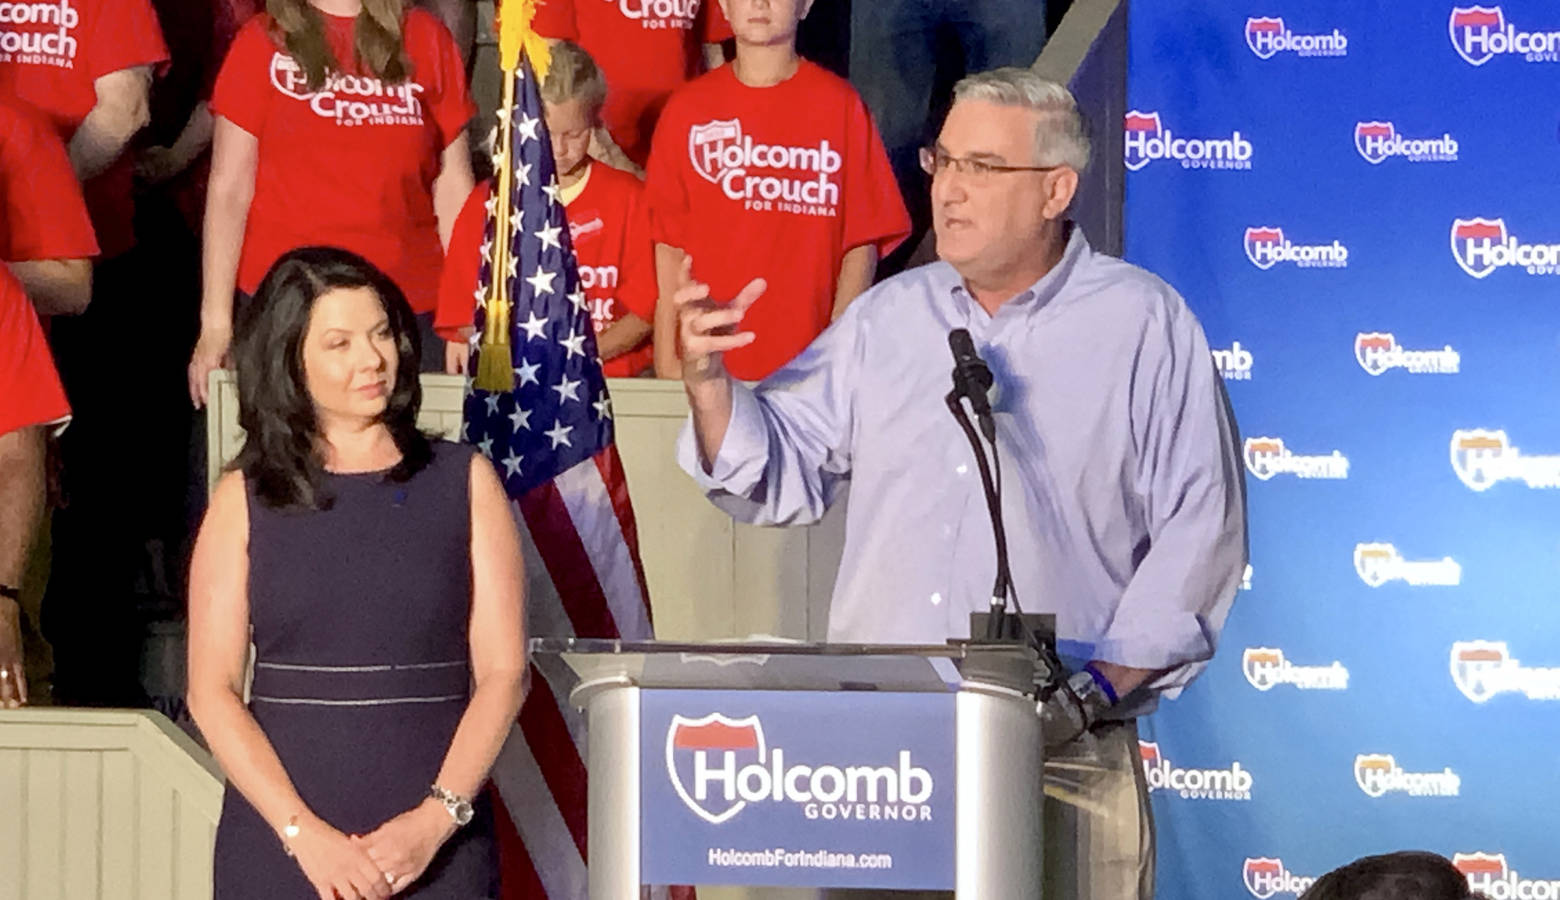 Gov. Eric Holcomb and his wife Janet at his re-election campaign launch. (Brandon Smith/IPB News)